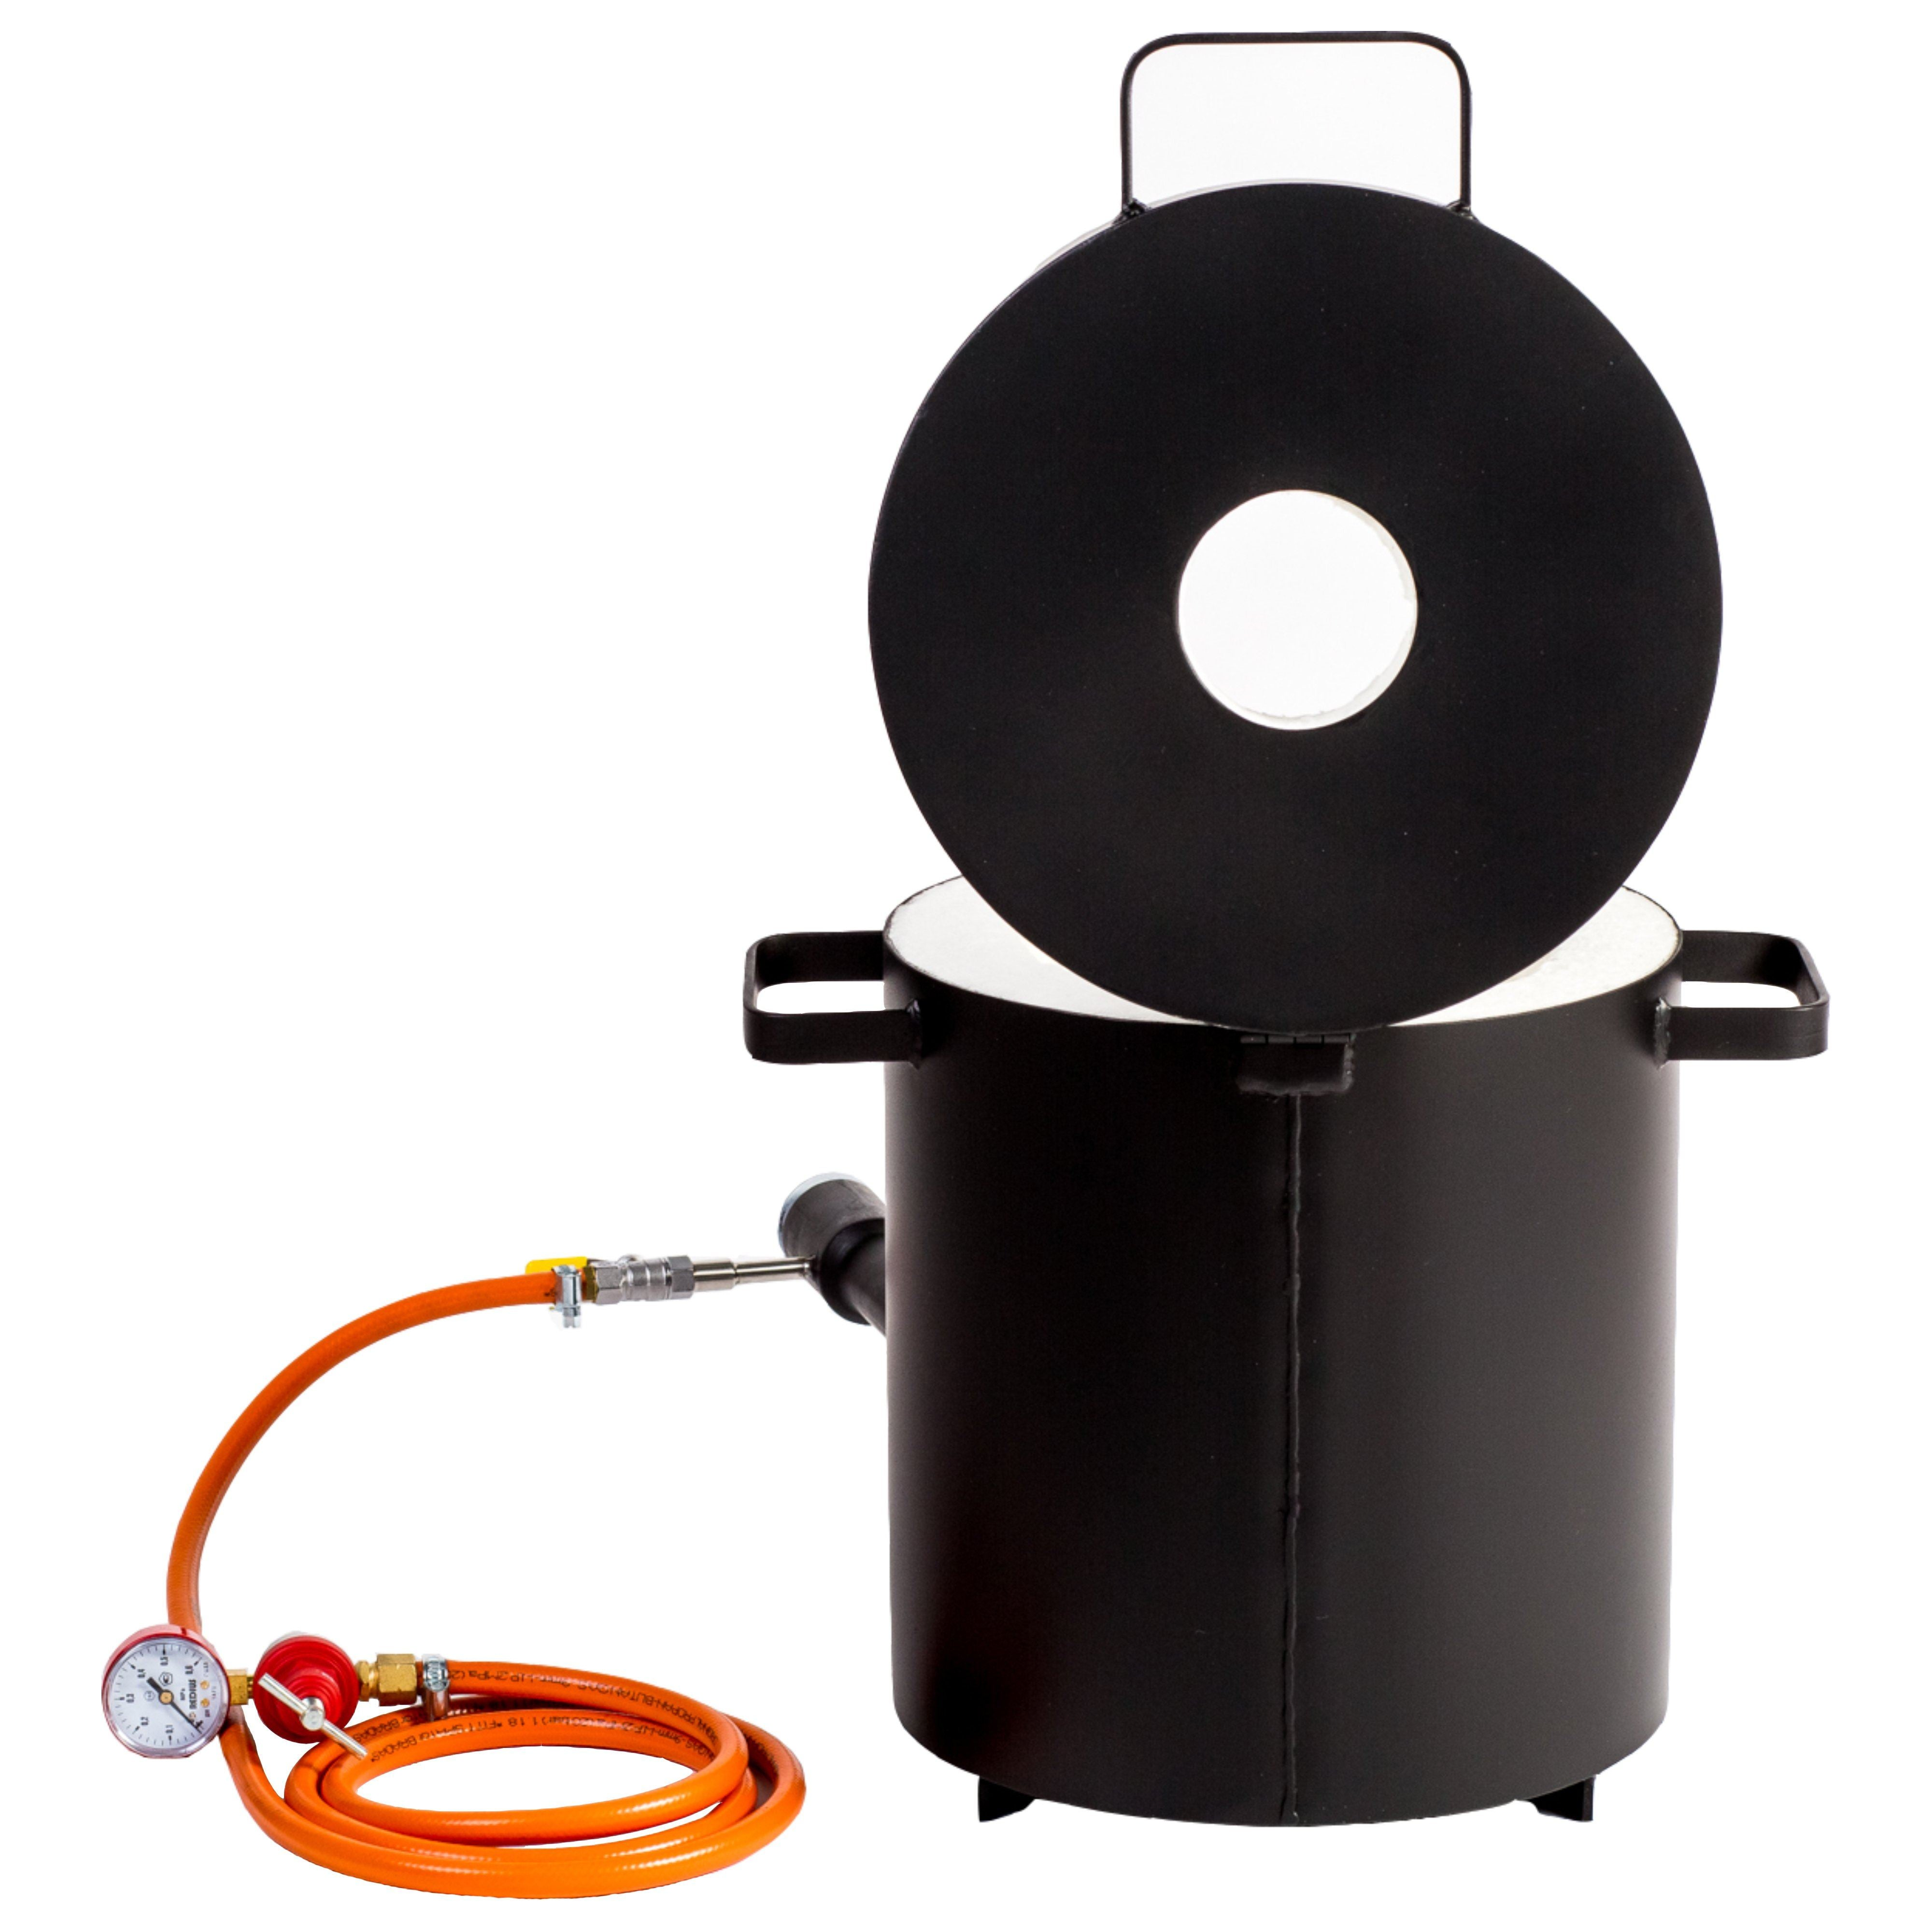 Draagbare Gas Smeltoven | 10 kg | 1 brander